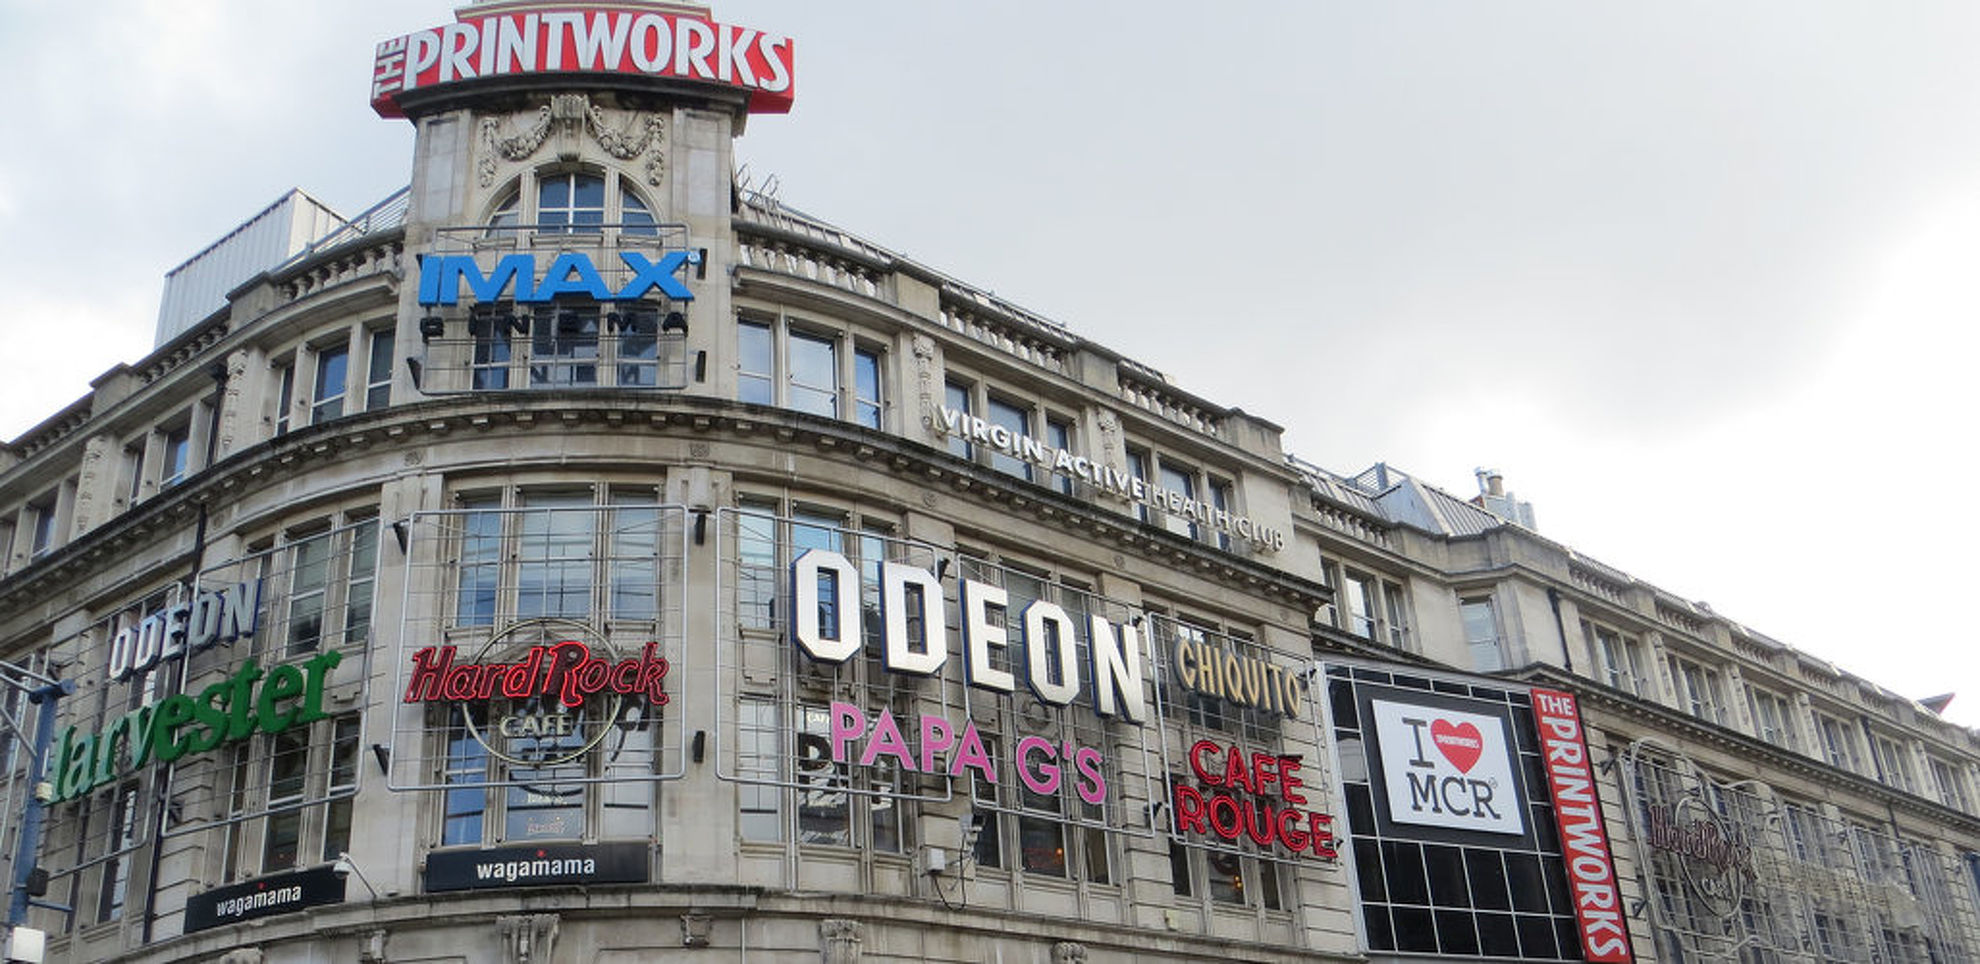 Explore The Printworks Manchester